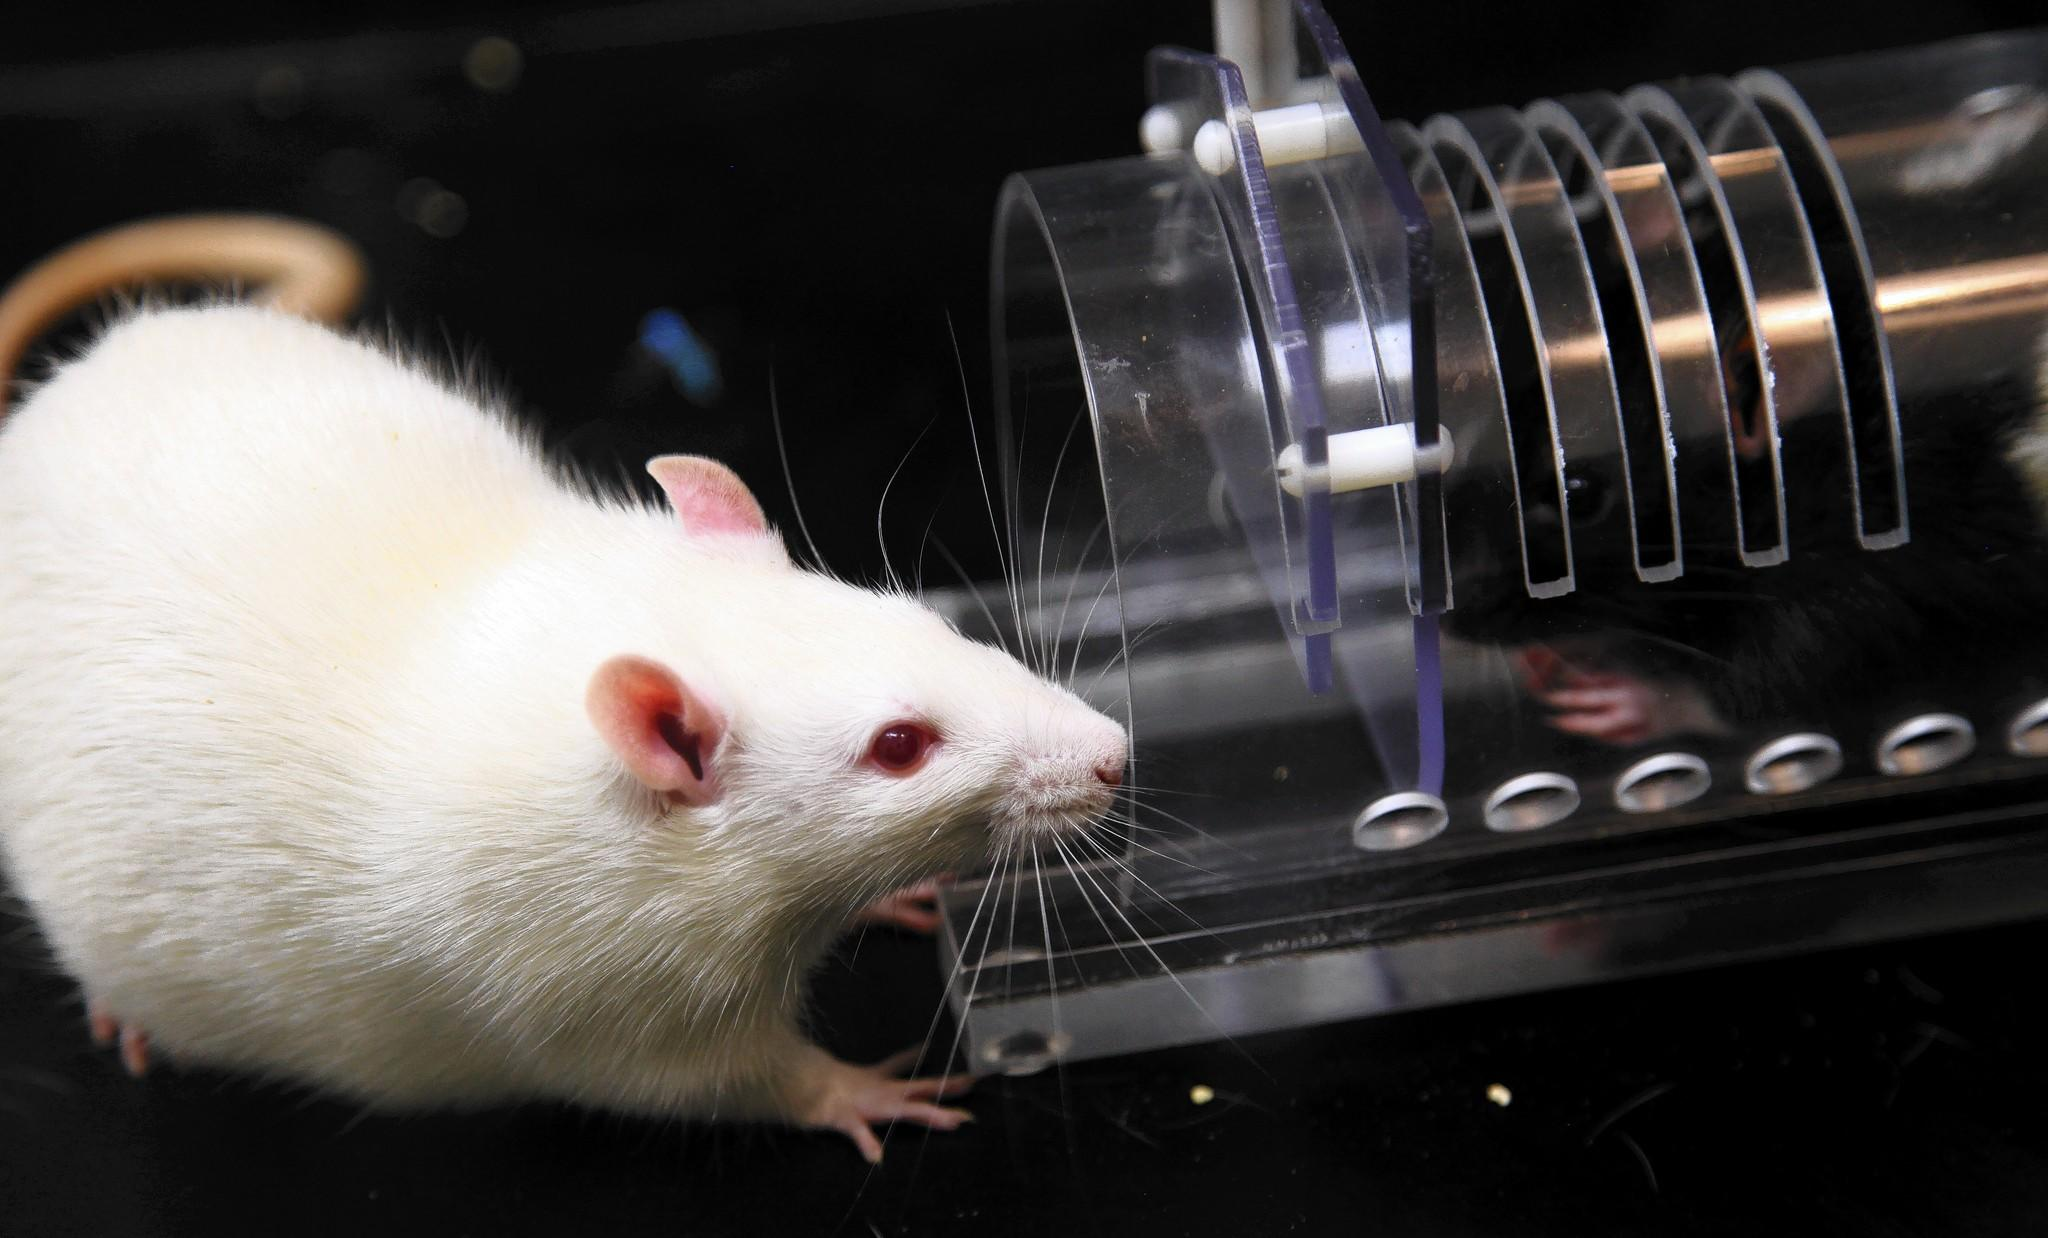 U. of C. neurobiologist Peggy Mason's research began by placing young albino rats with litters of the black-hooded strain.